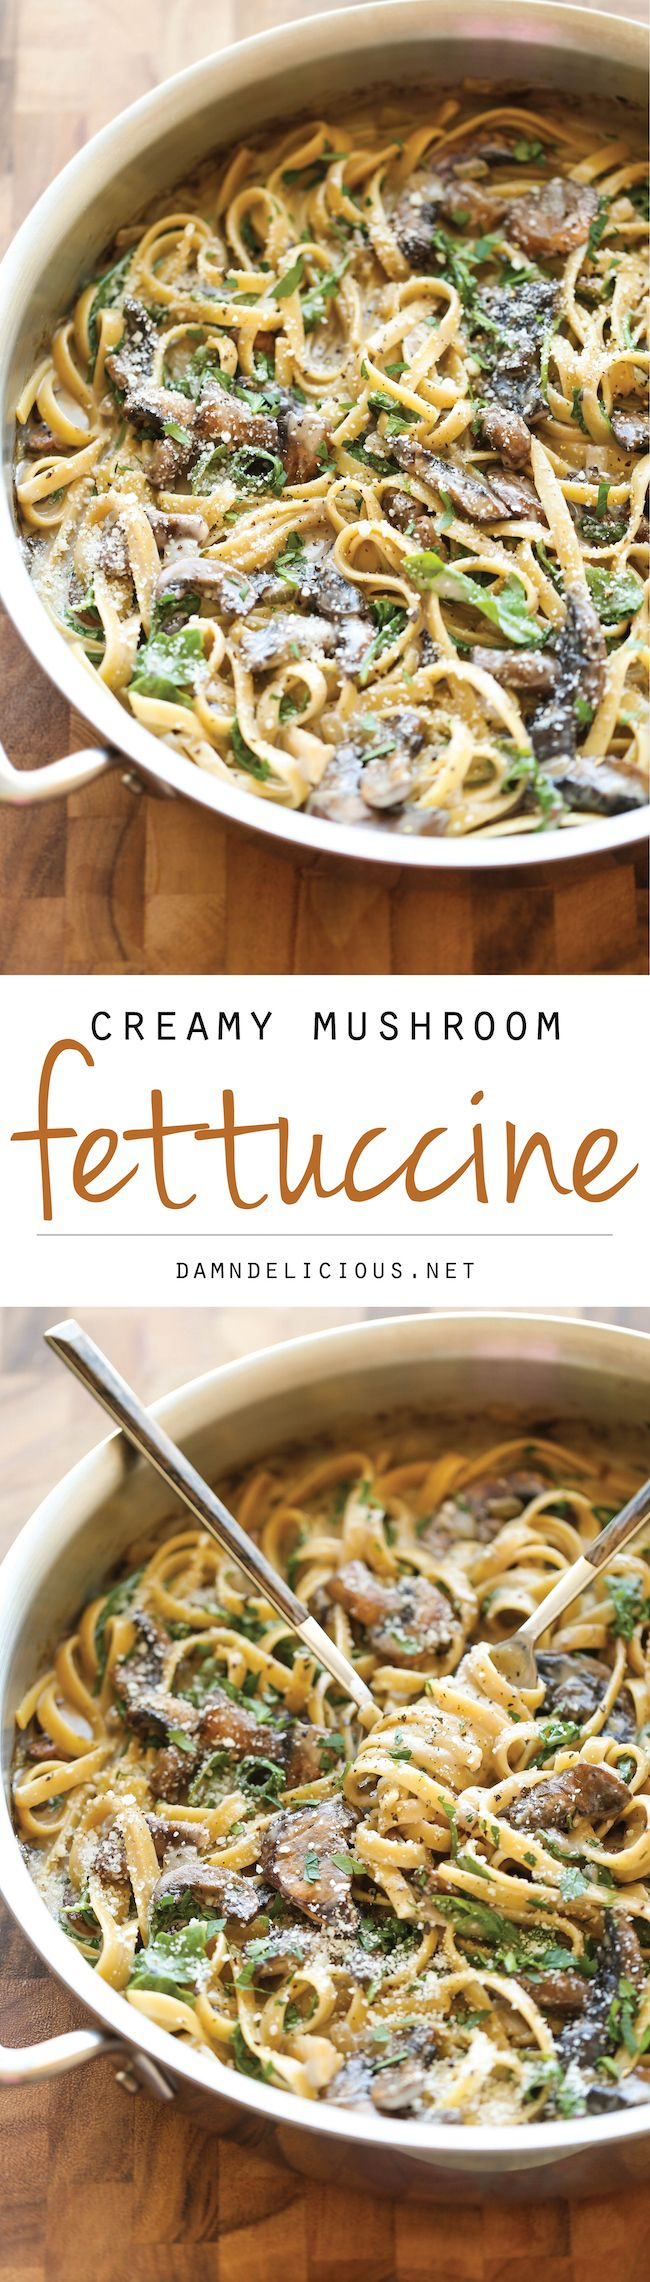 Creamy Mushroom Fettuccine - The creamiest mushroom alfredo sauce you will ever have - a sauce so good, you'll want to slurp it with a spoon!